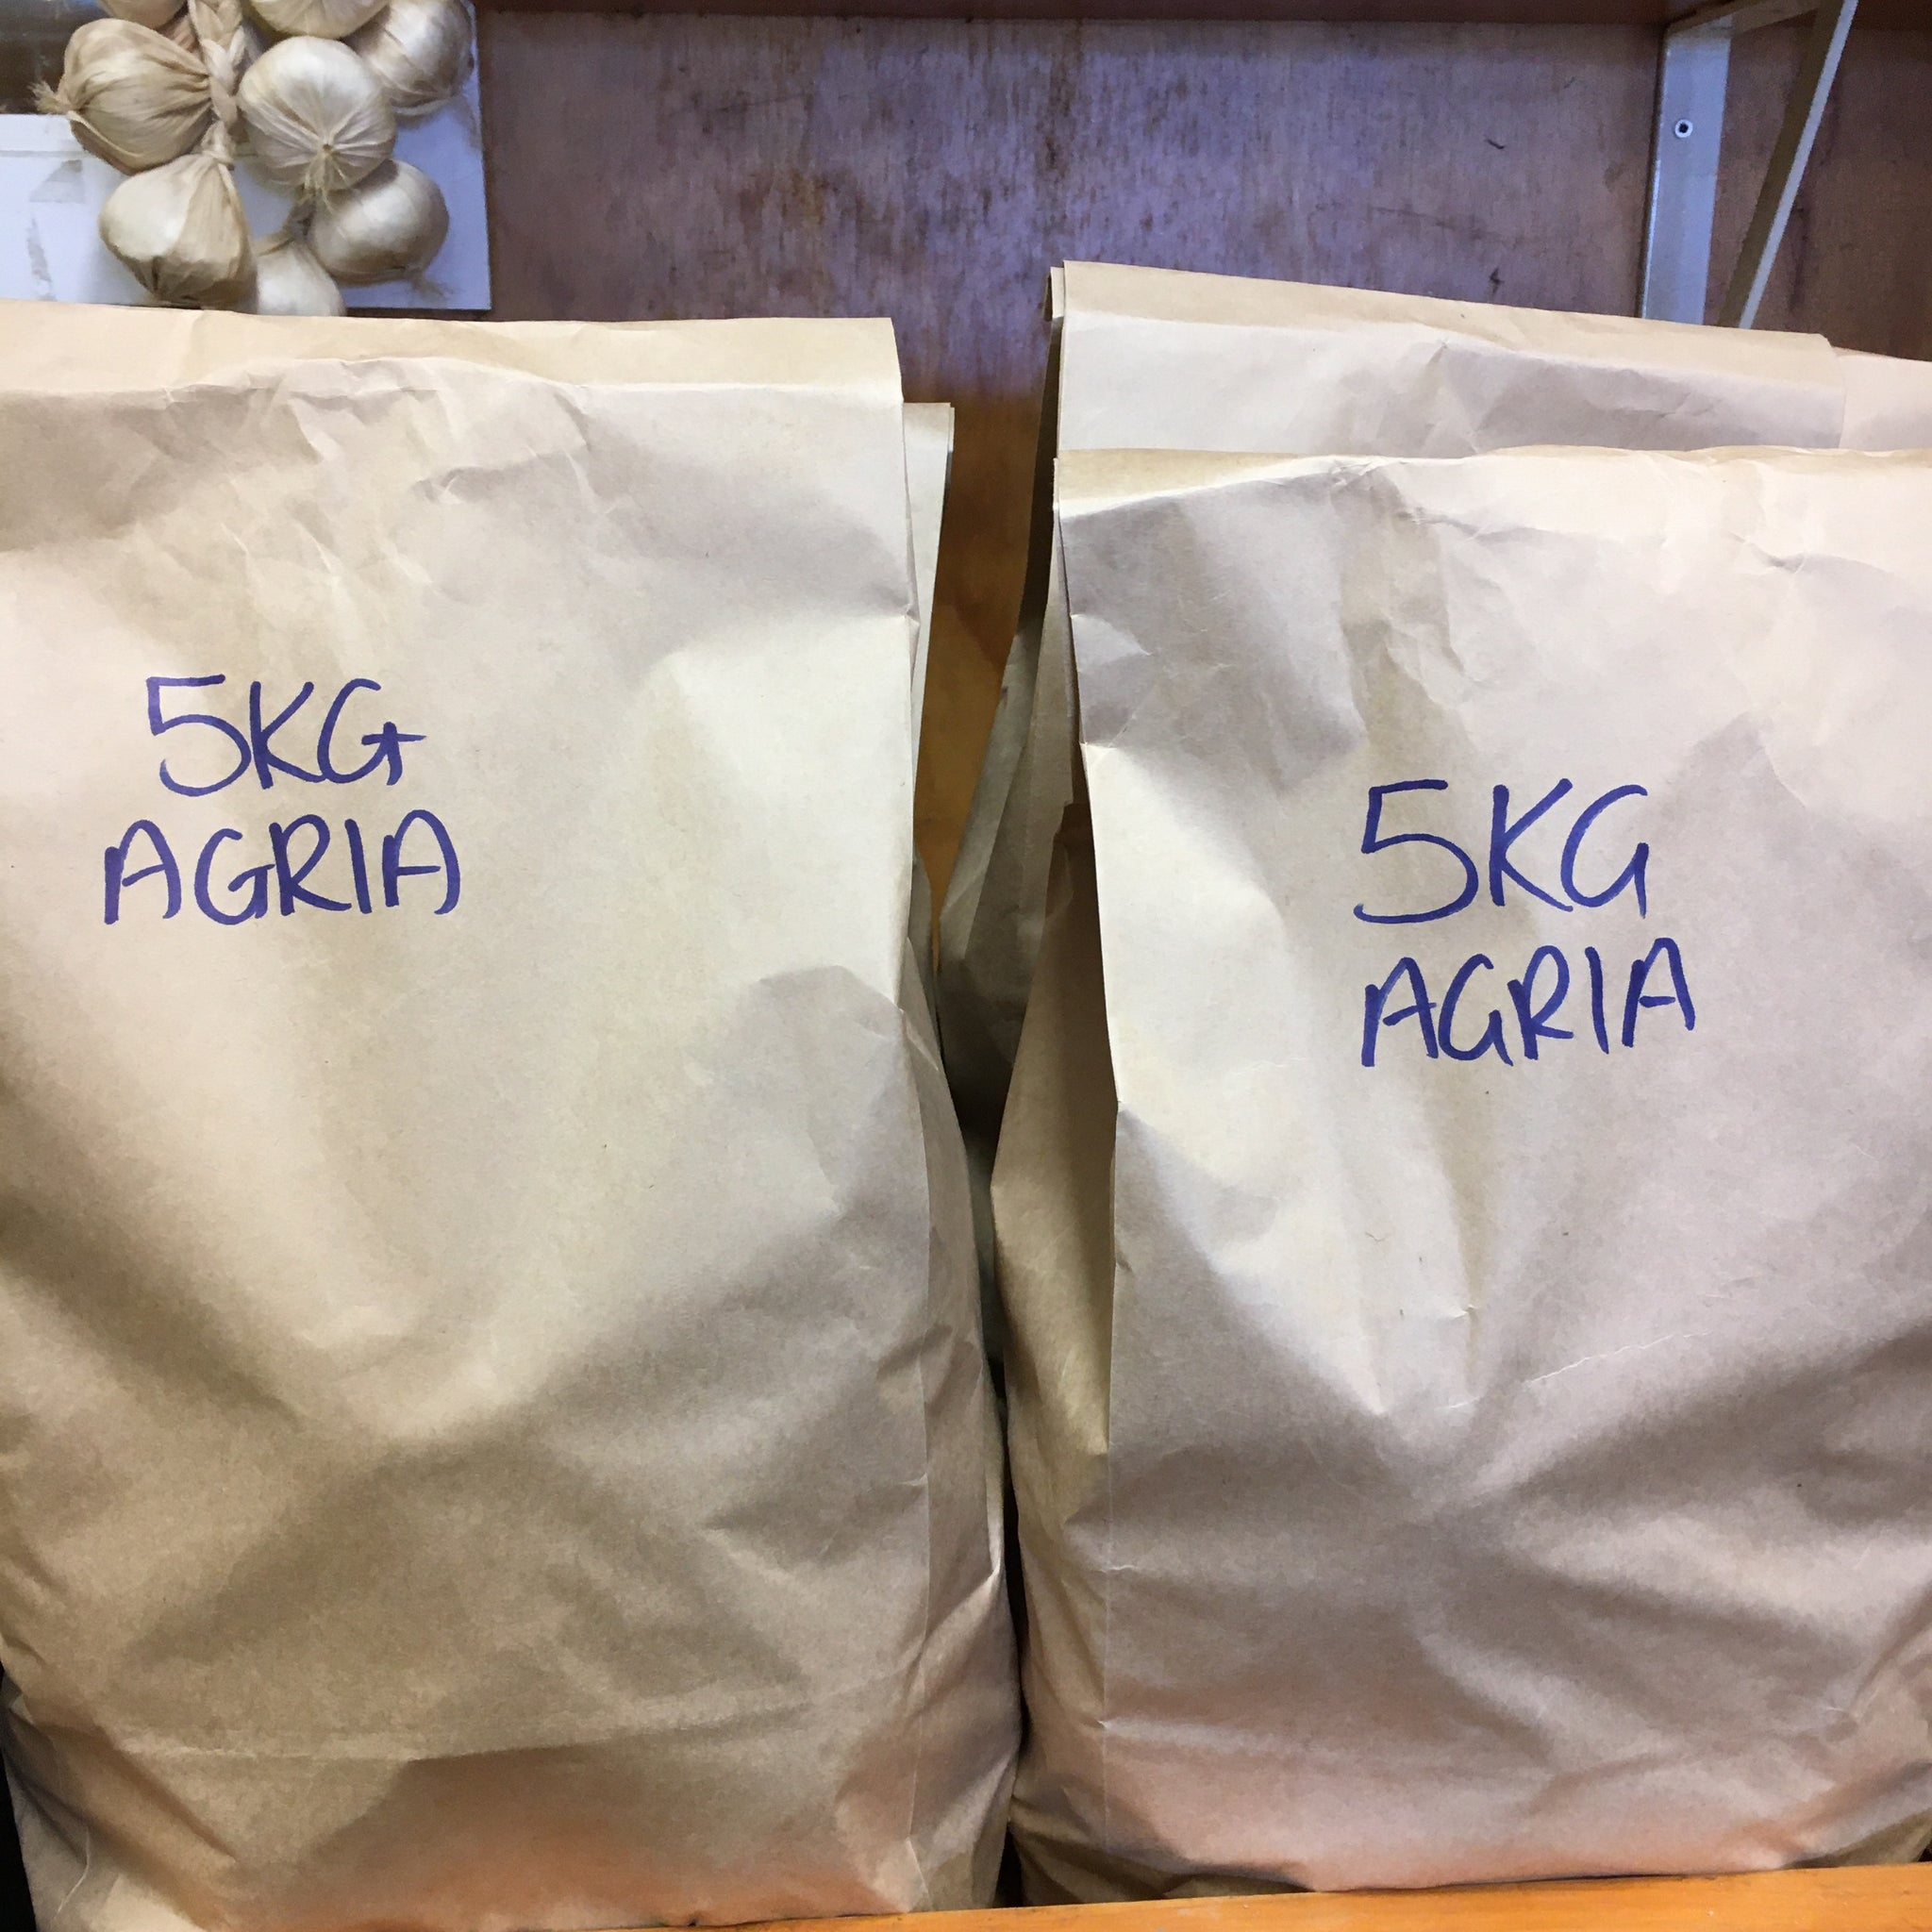 Agria Potatoes-5kg bag